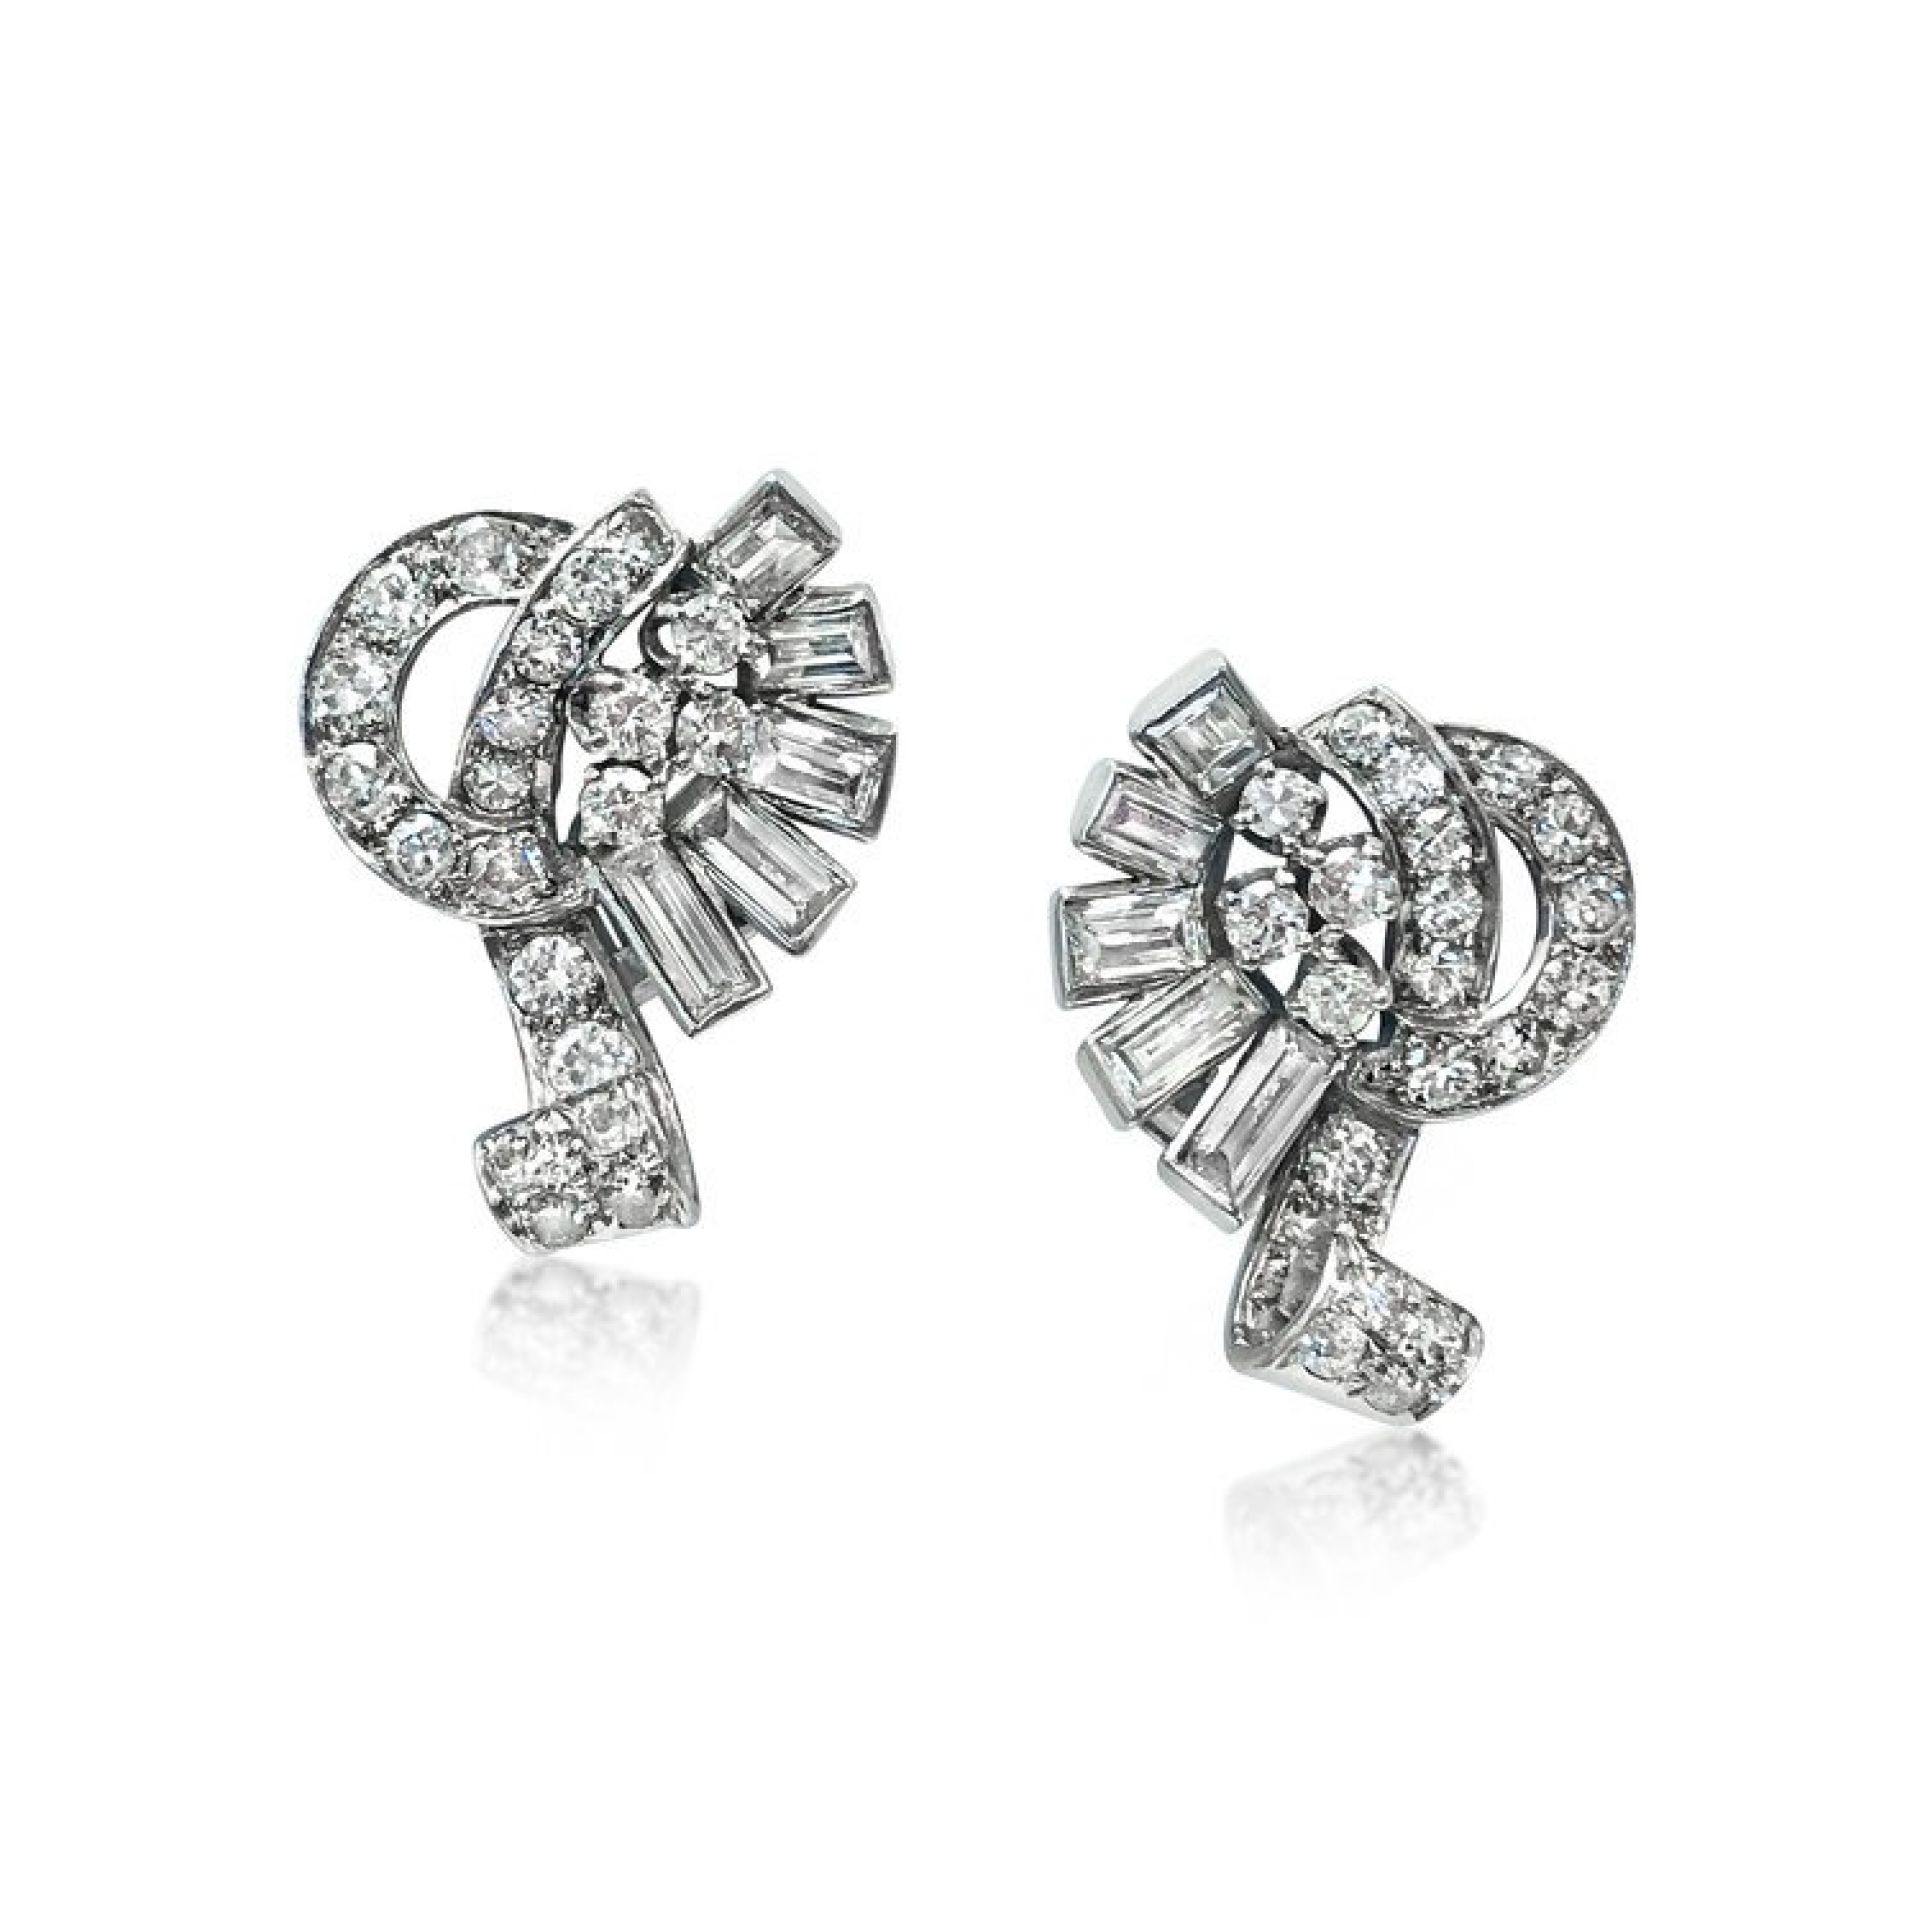 A PAIR OF RETRO DIAMOND EARRINGS